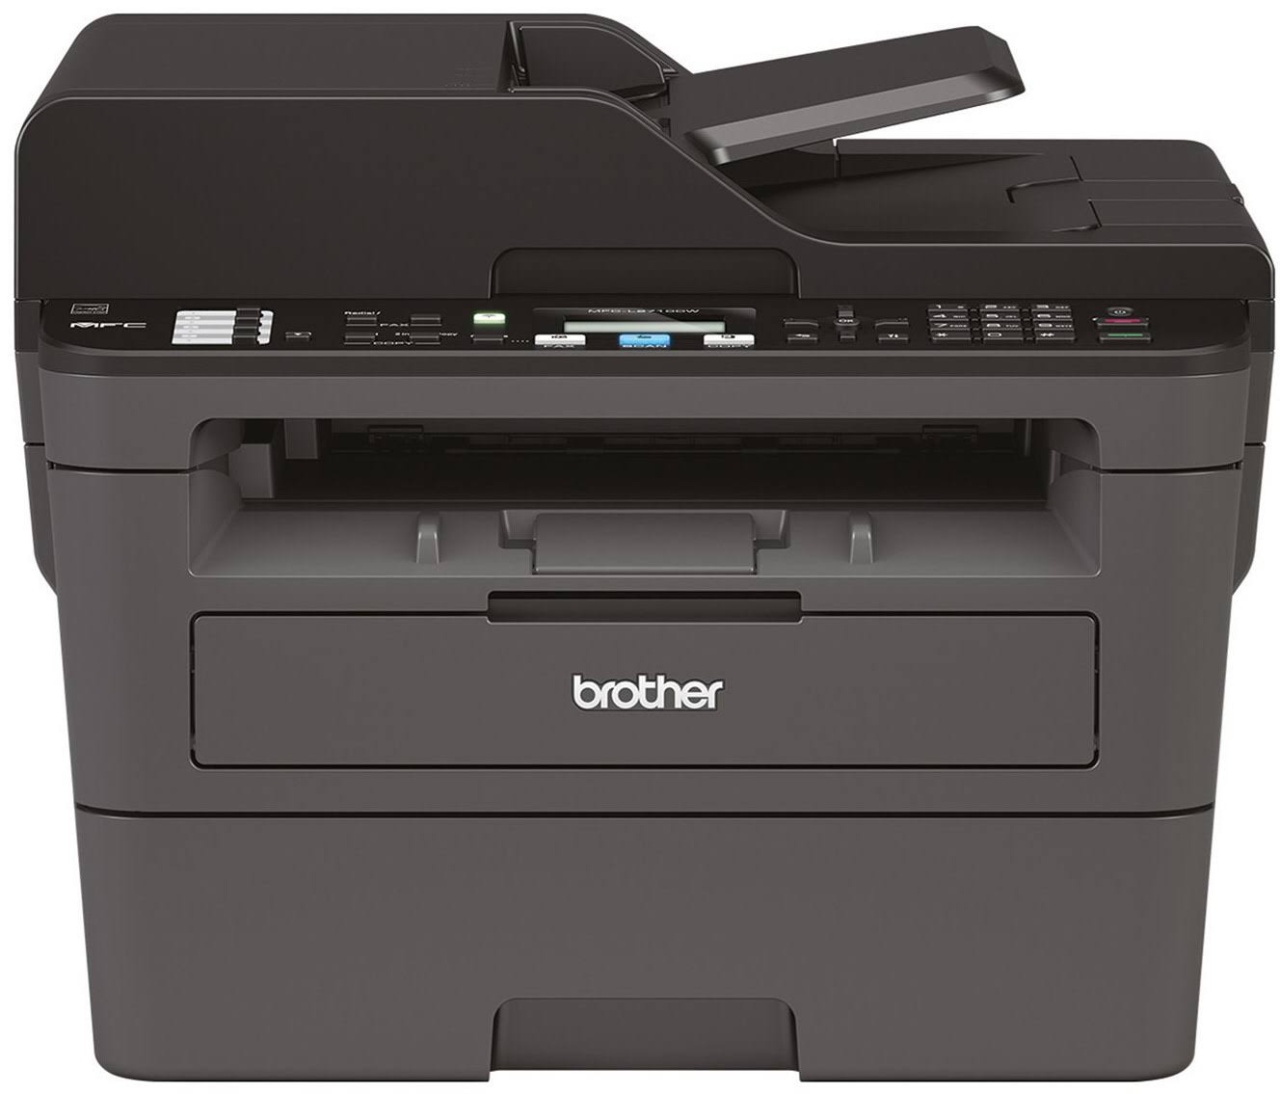 Brother MFC-L2710DW, 4-in-1 Multifunktions-Laserdrucker